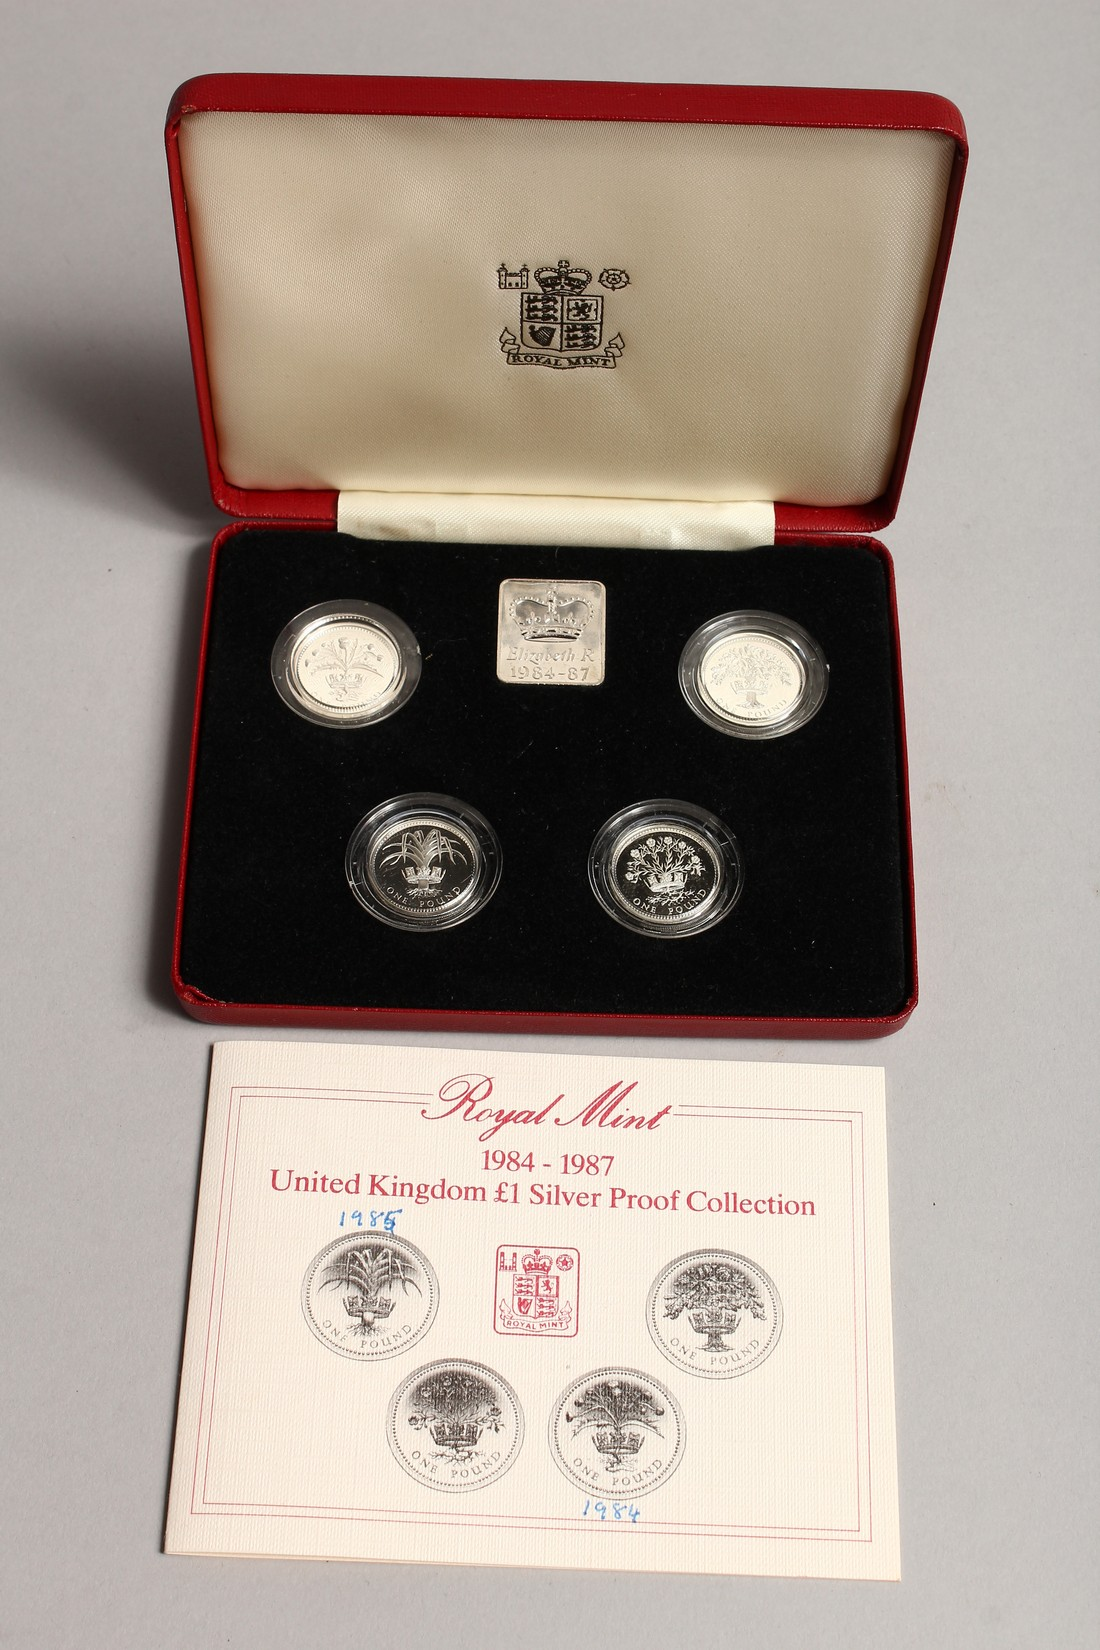 ROYAL MINT 1984 - 1987 UNITED KINGDOM £1.00 SILVER PROOF COLLECTION, in a case issued by the Royal - Image 2 of 2